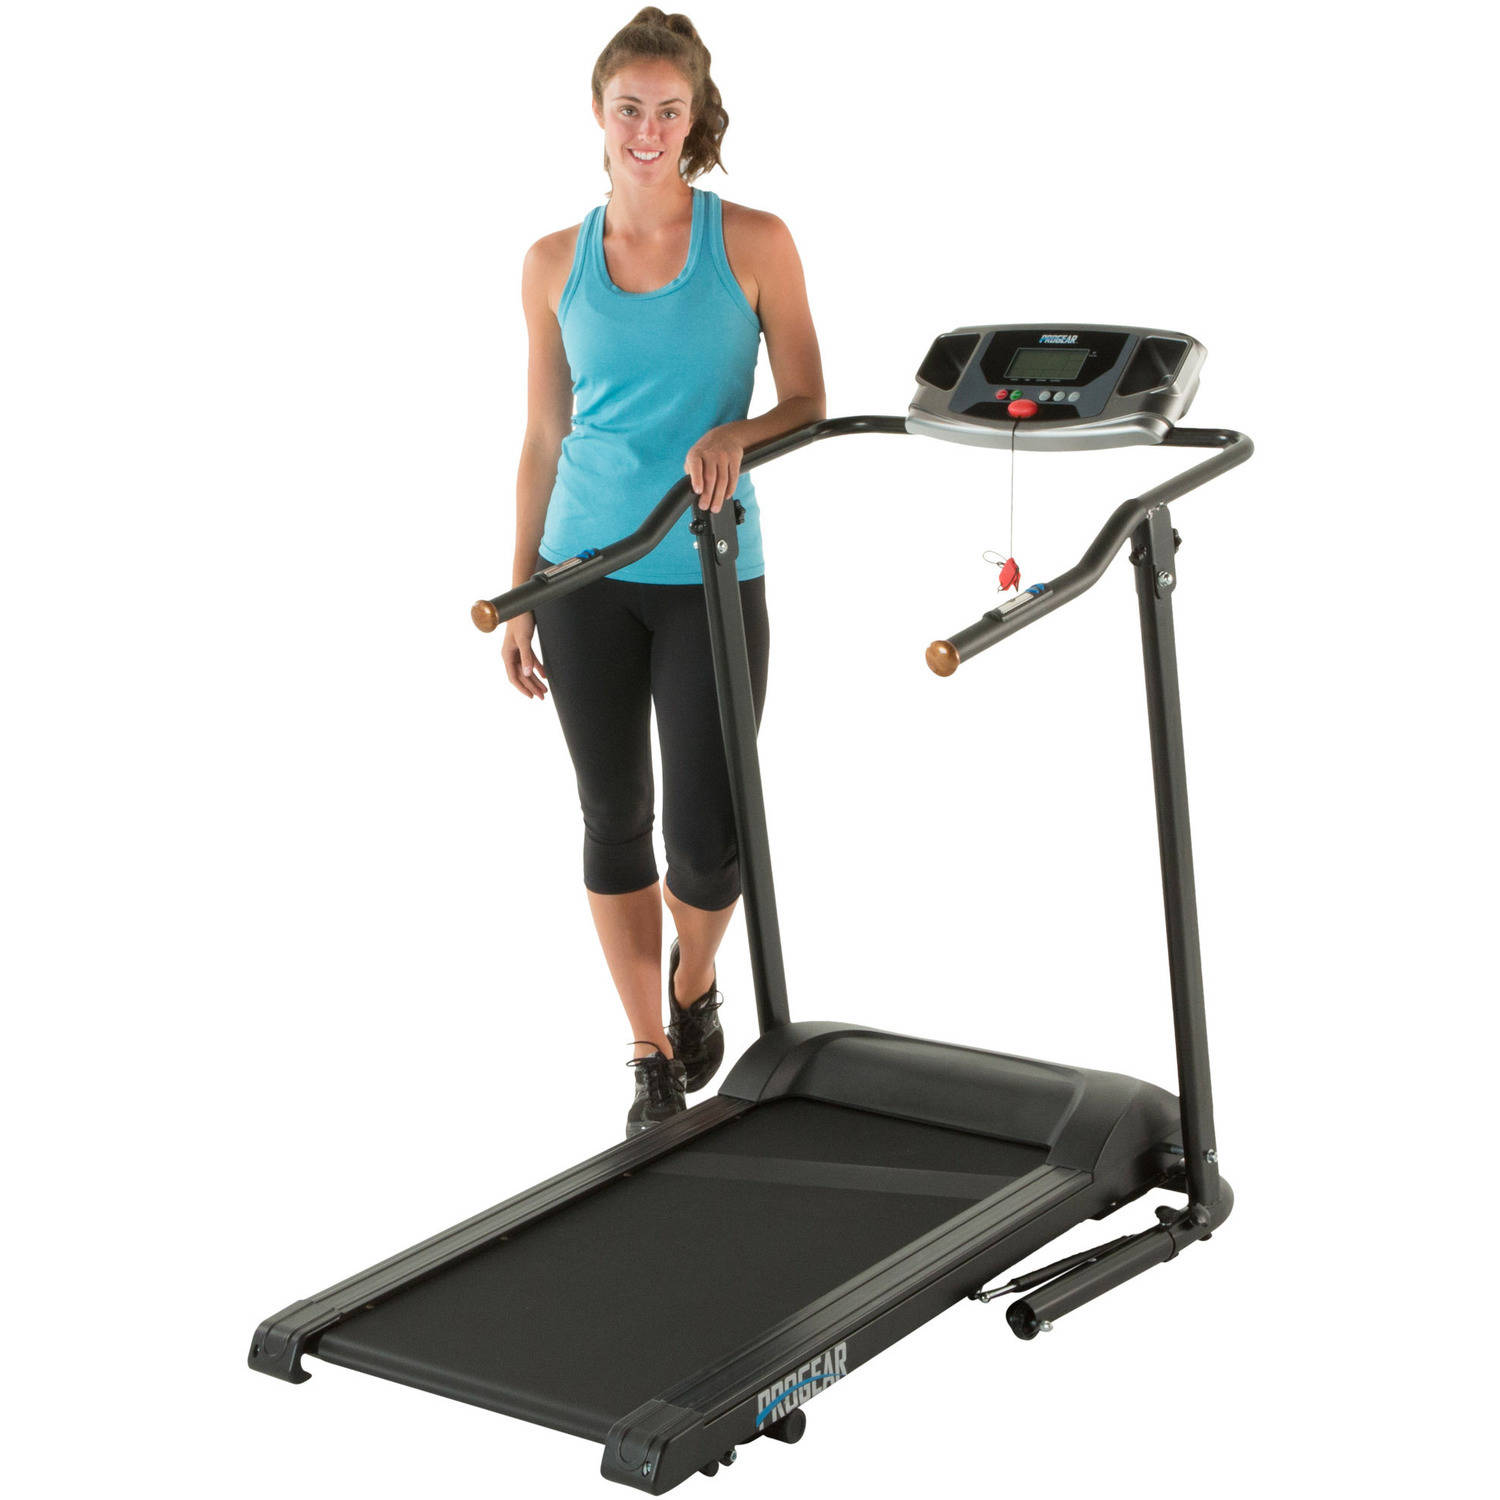 Progear HCXL 4000 Ultimate High-Capacity, Extra-Wide Walking and Jogging Electric Treadmill with Heart Pulse System